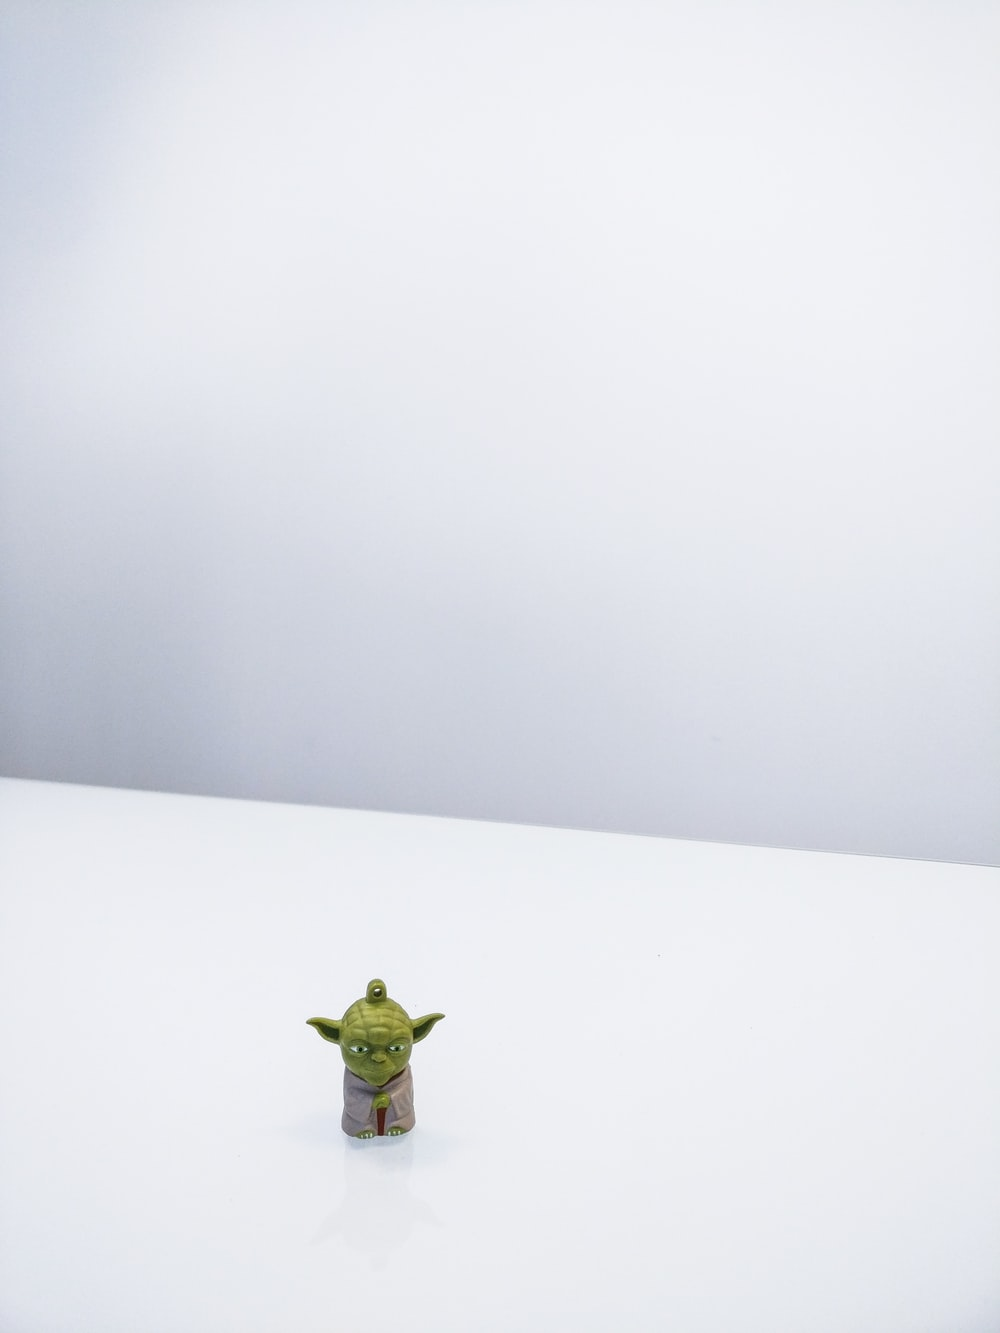 Star Wars Master Yoda minifigure on white surface